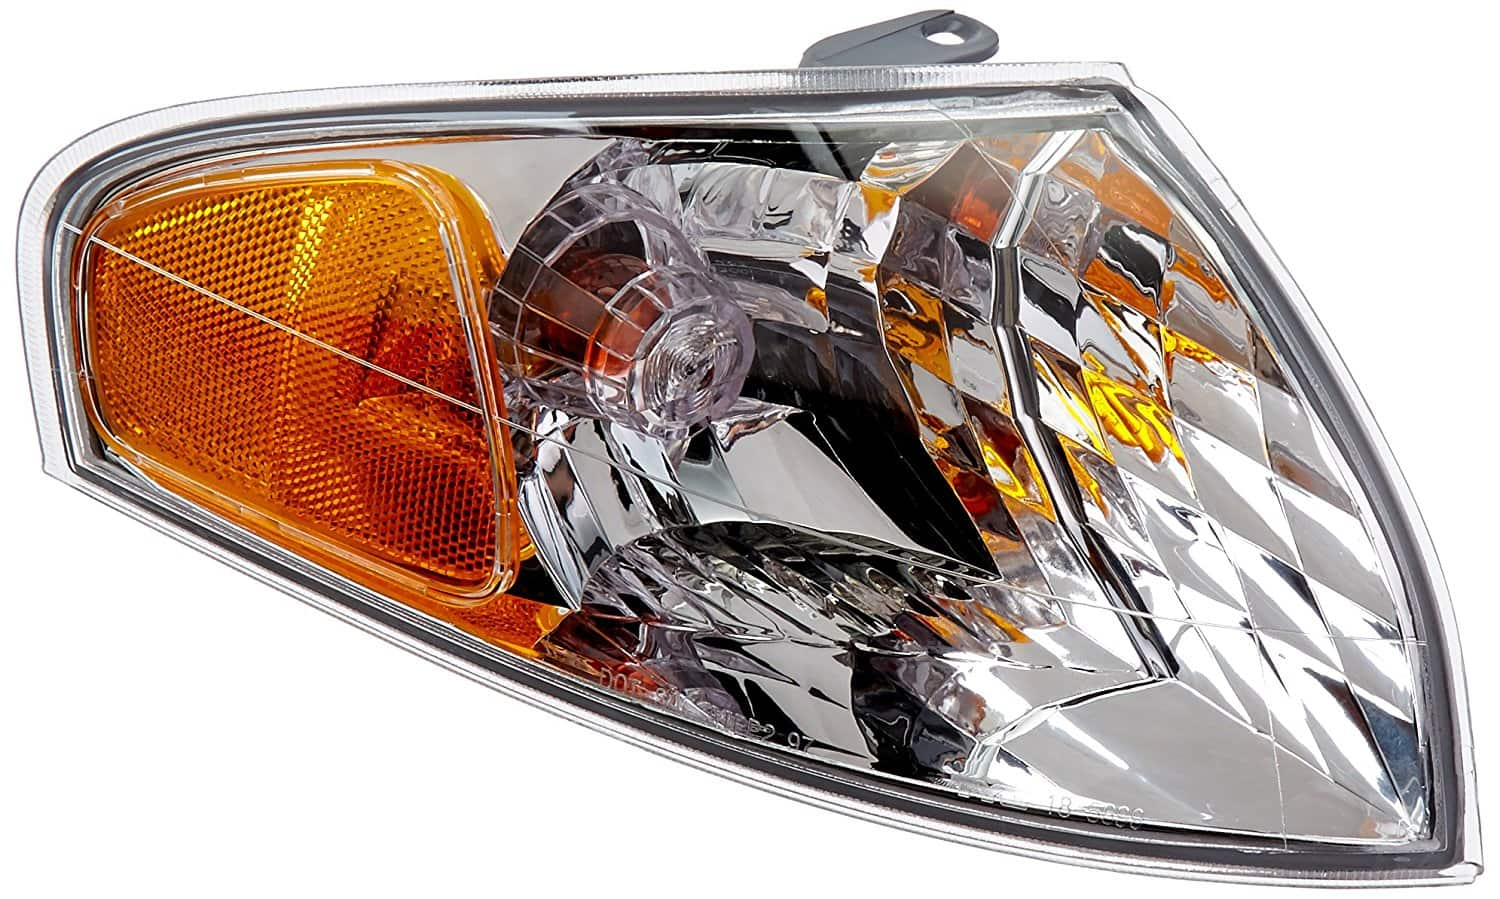 EXPIRED Addon Item: TYC 18-5699-00-1 Replacement Front-Right Side Marker Light for 2000-2002 Mazda 626 for $0.83